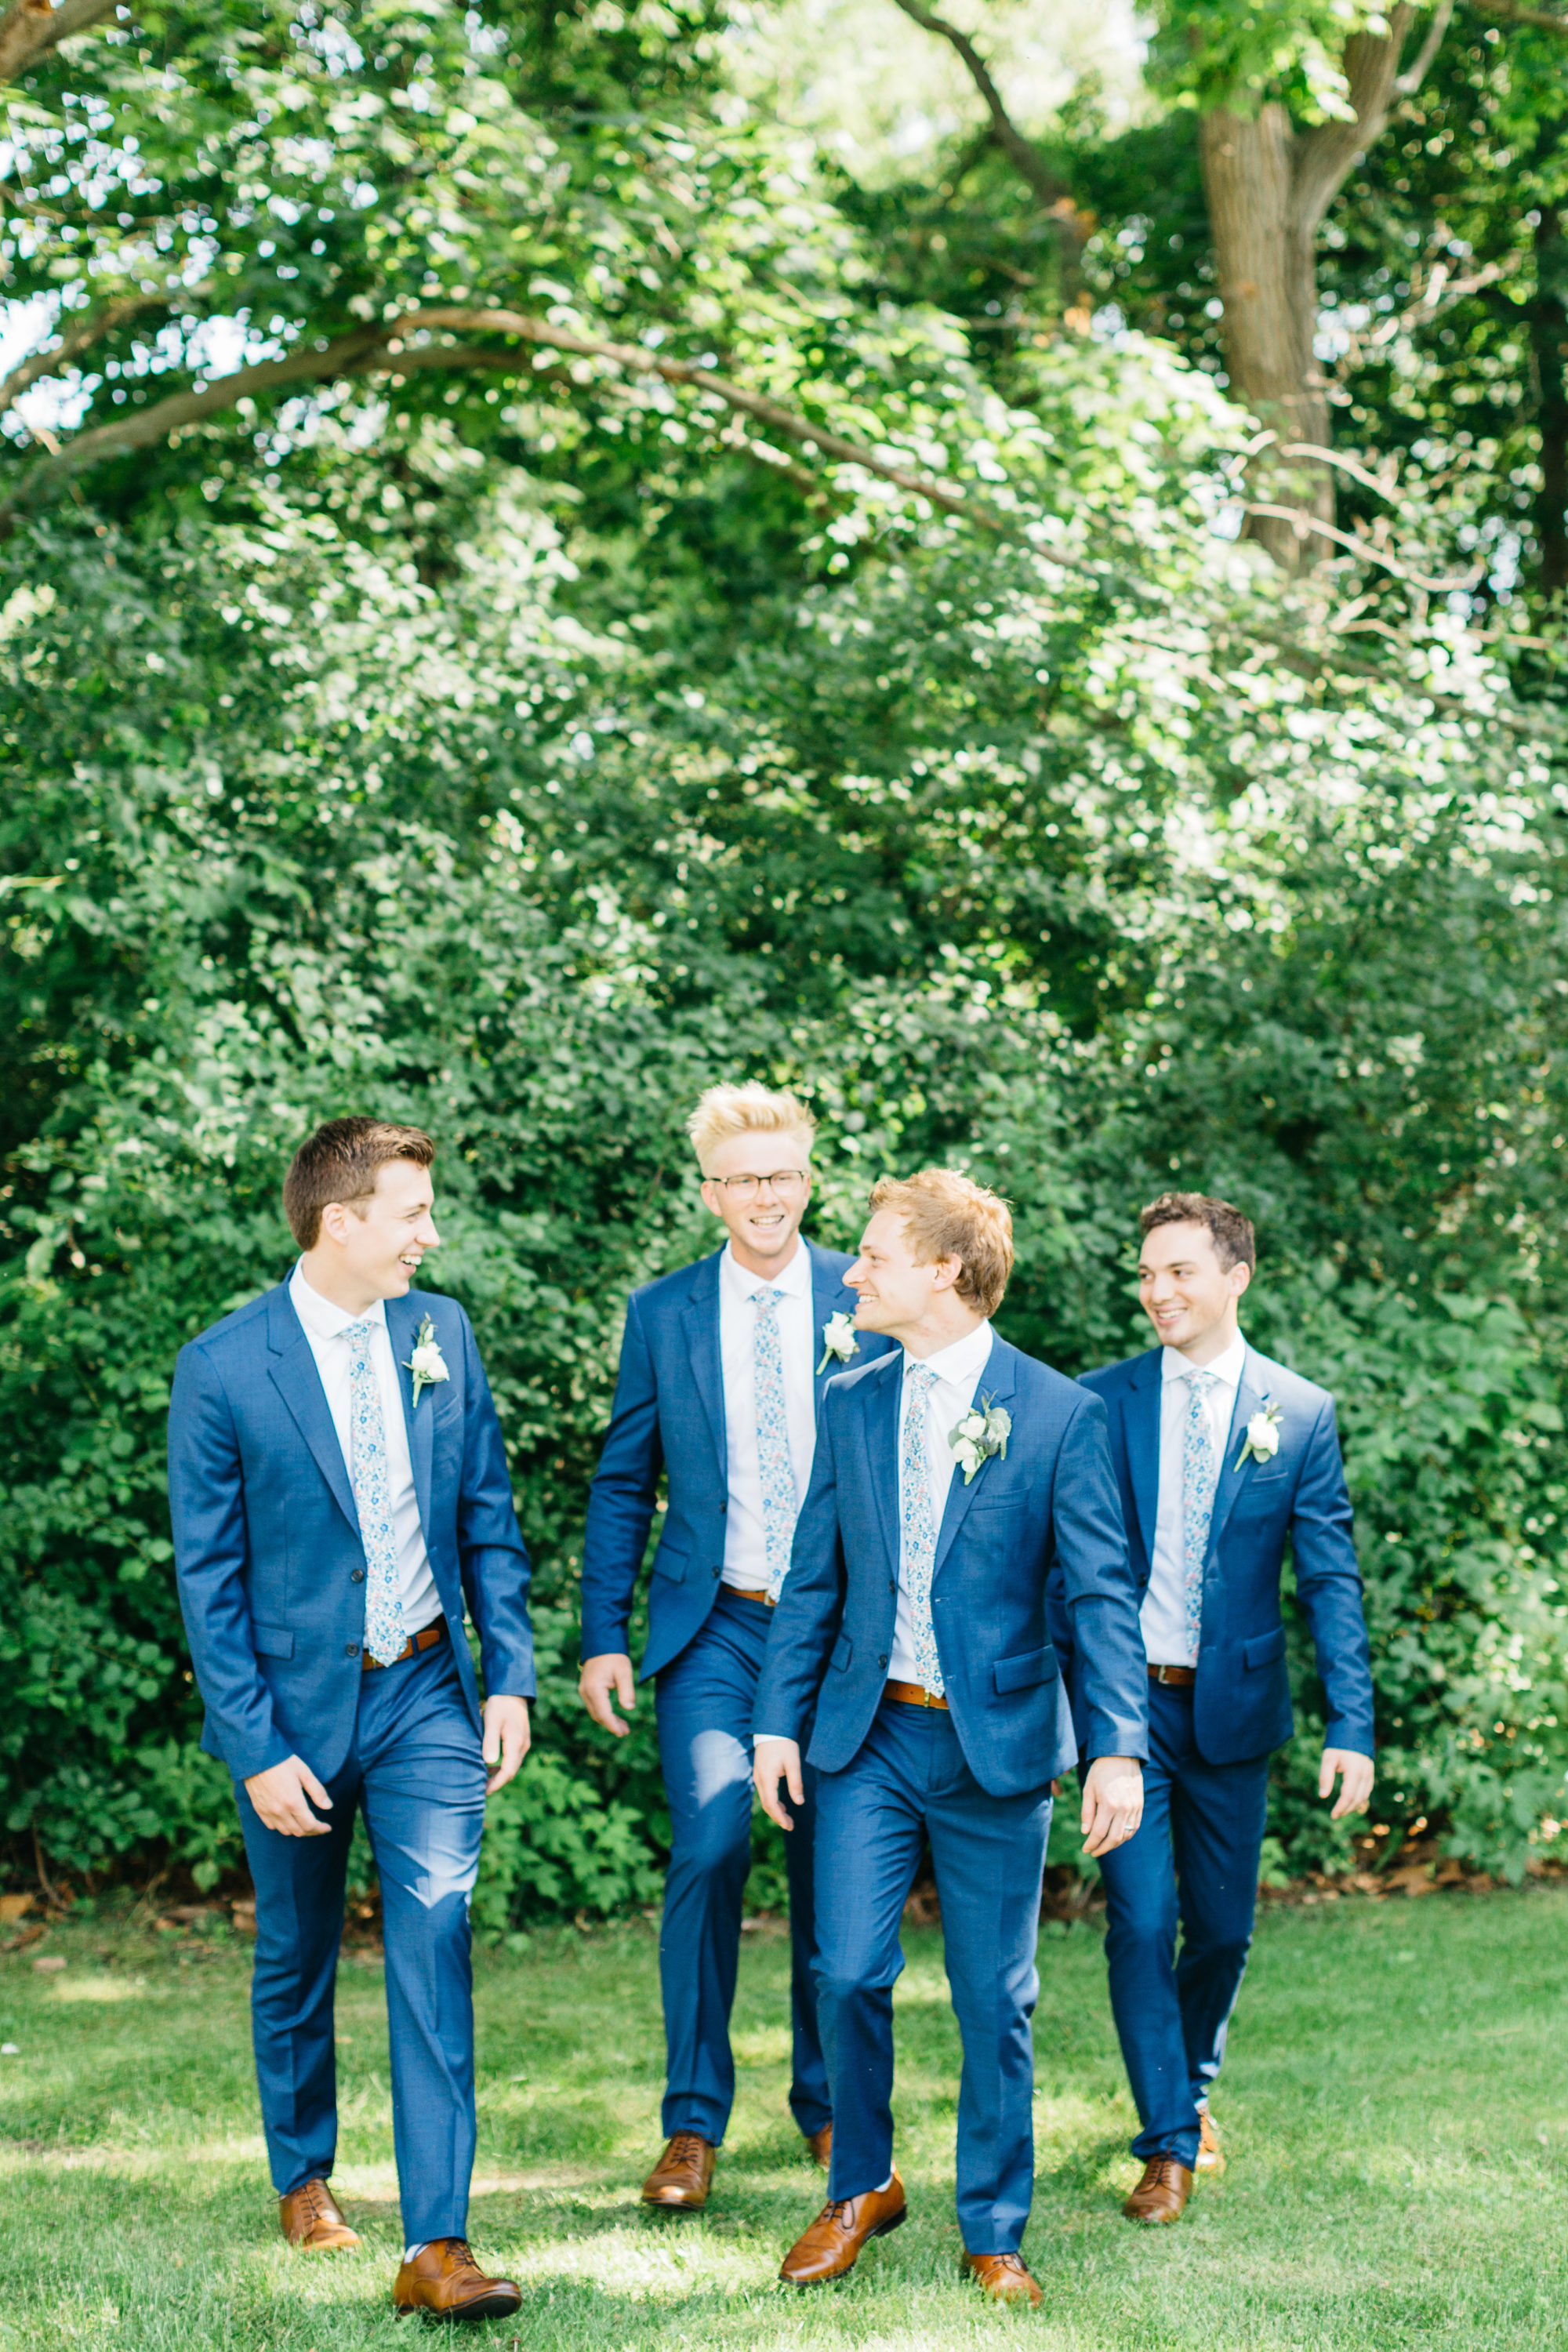 Groom walking with groomsmen